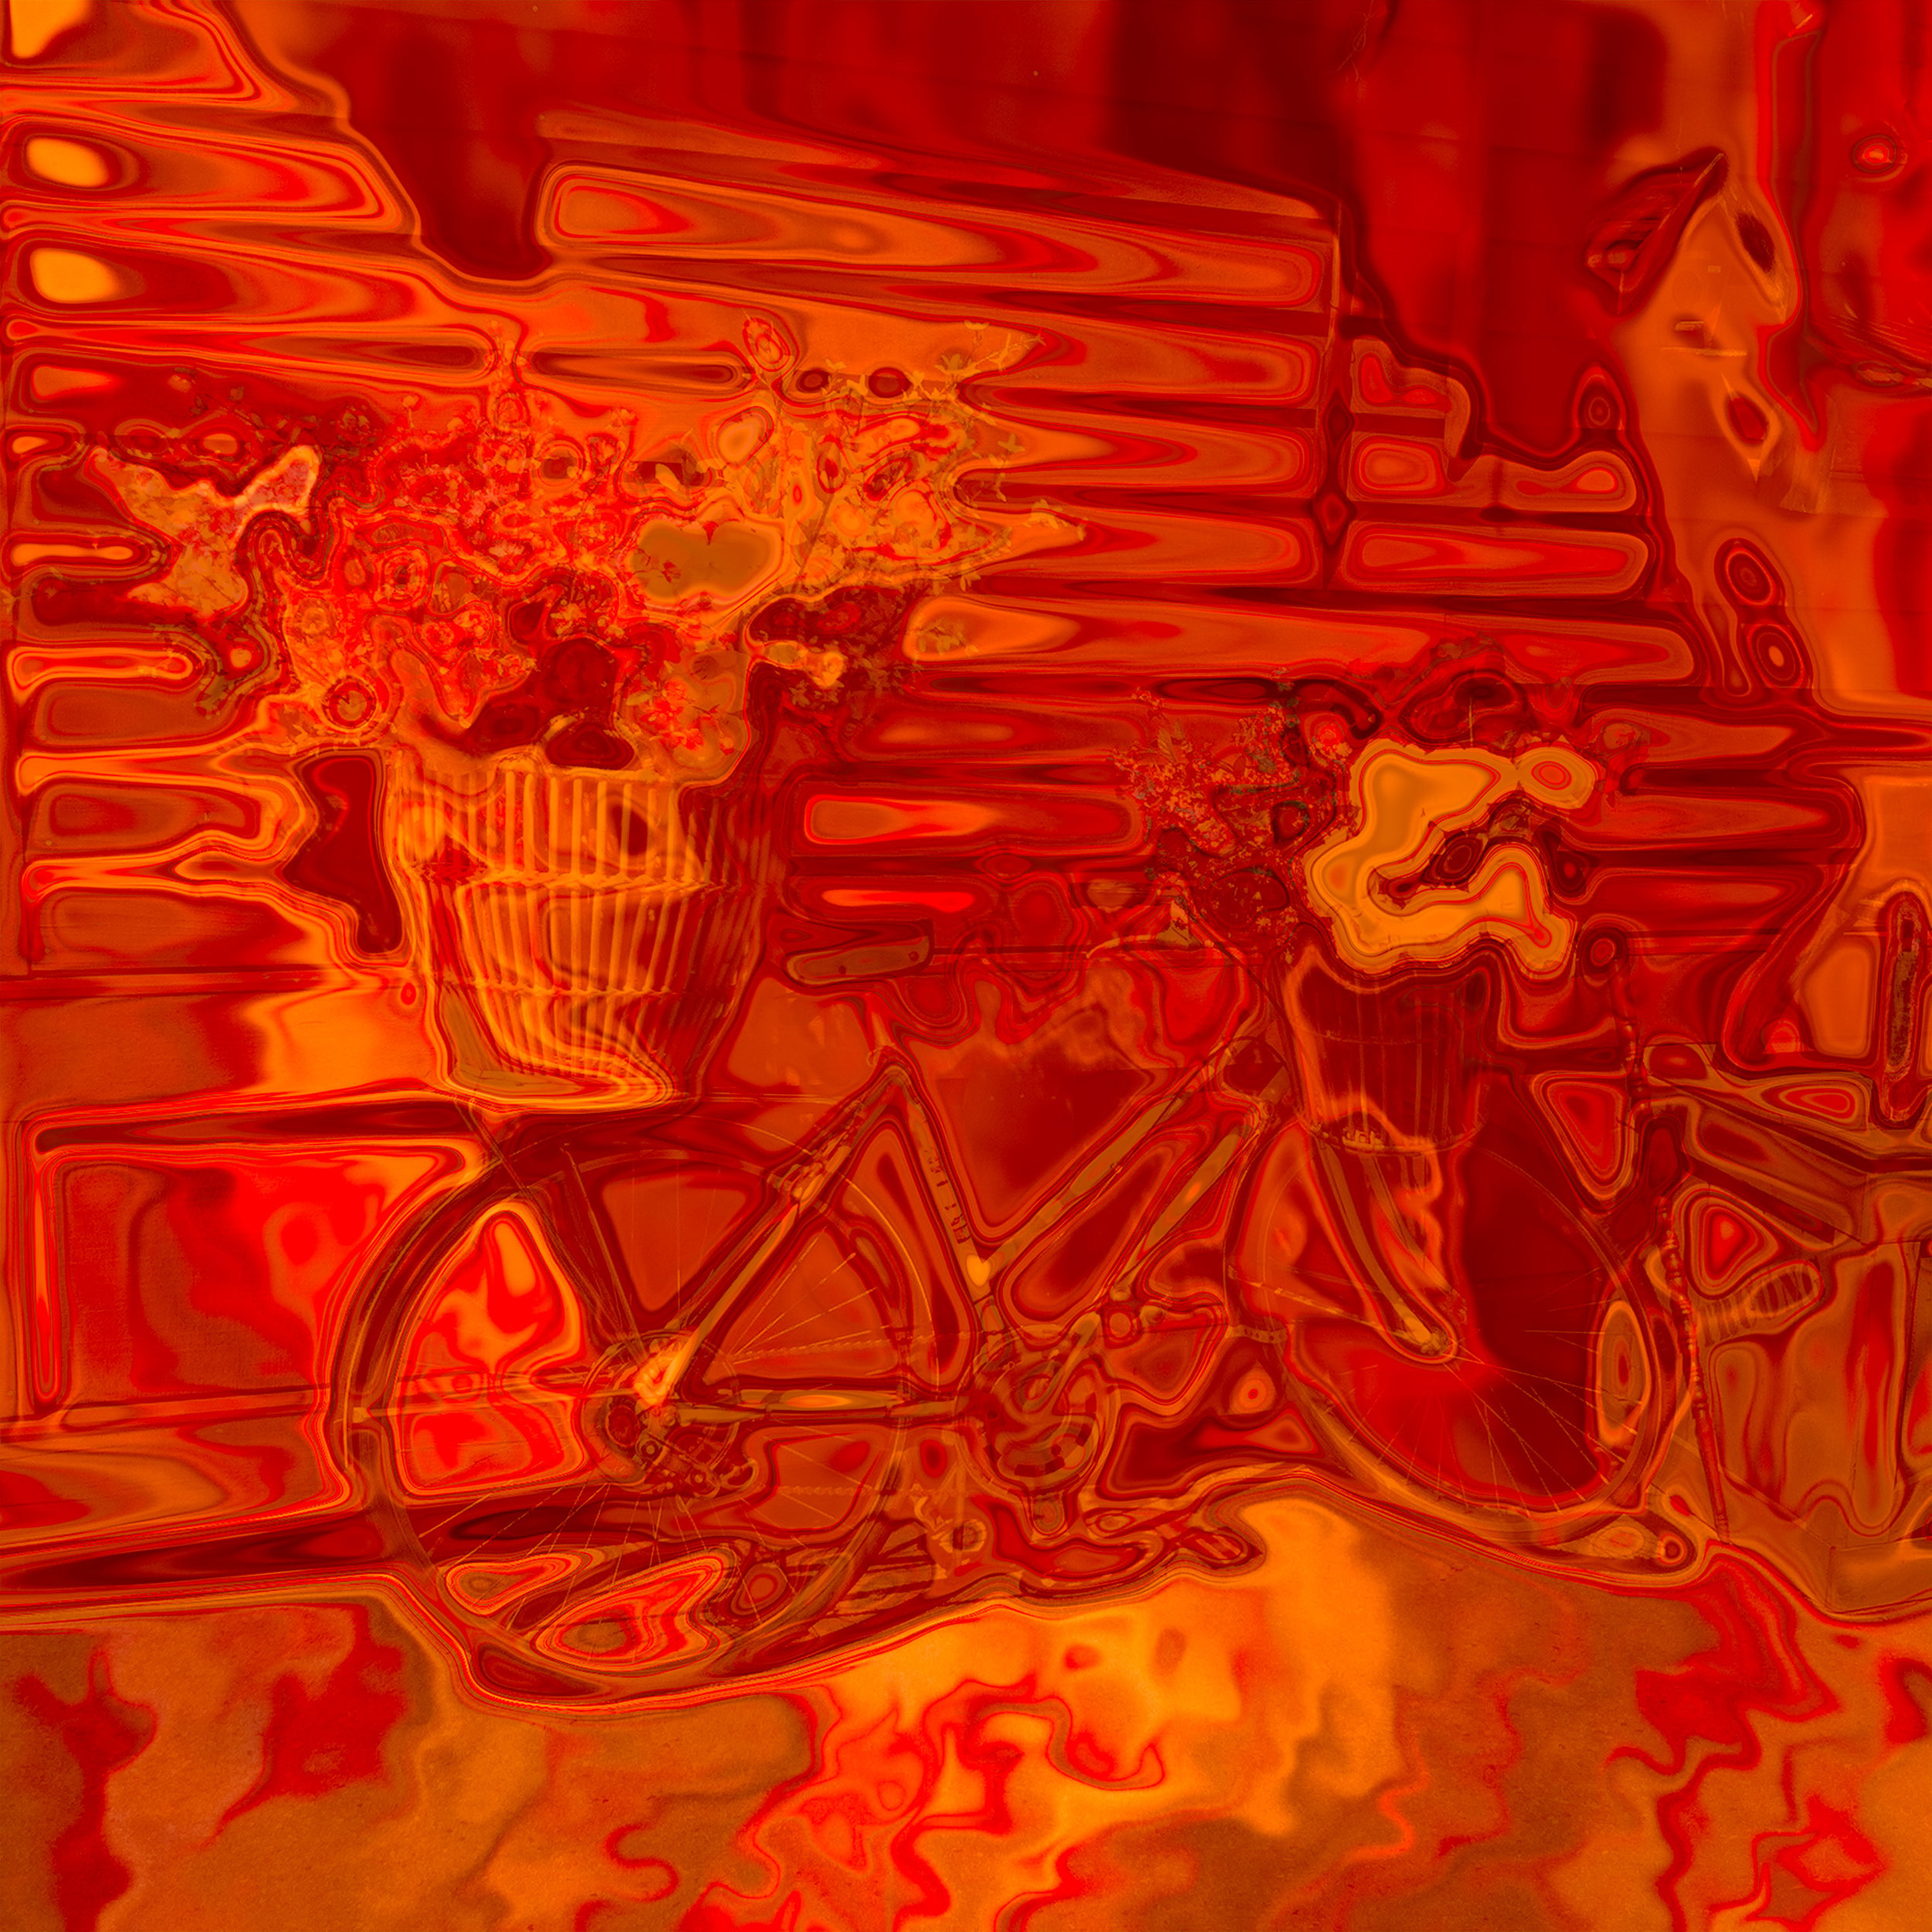 red-bicycle-with-basket.jpg